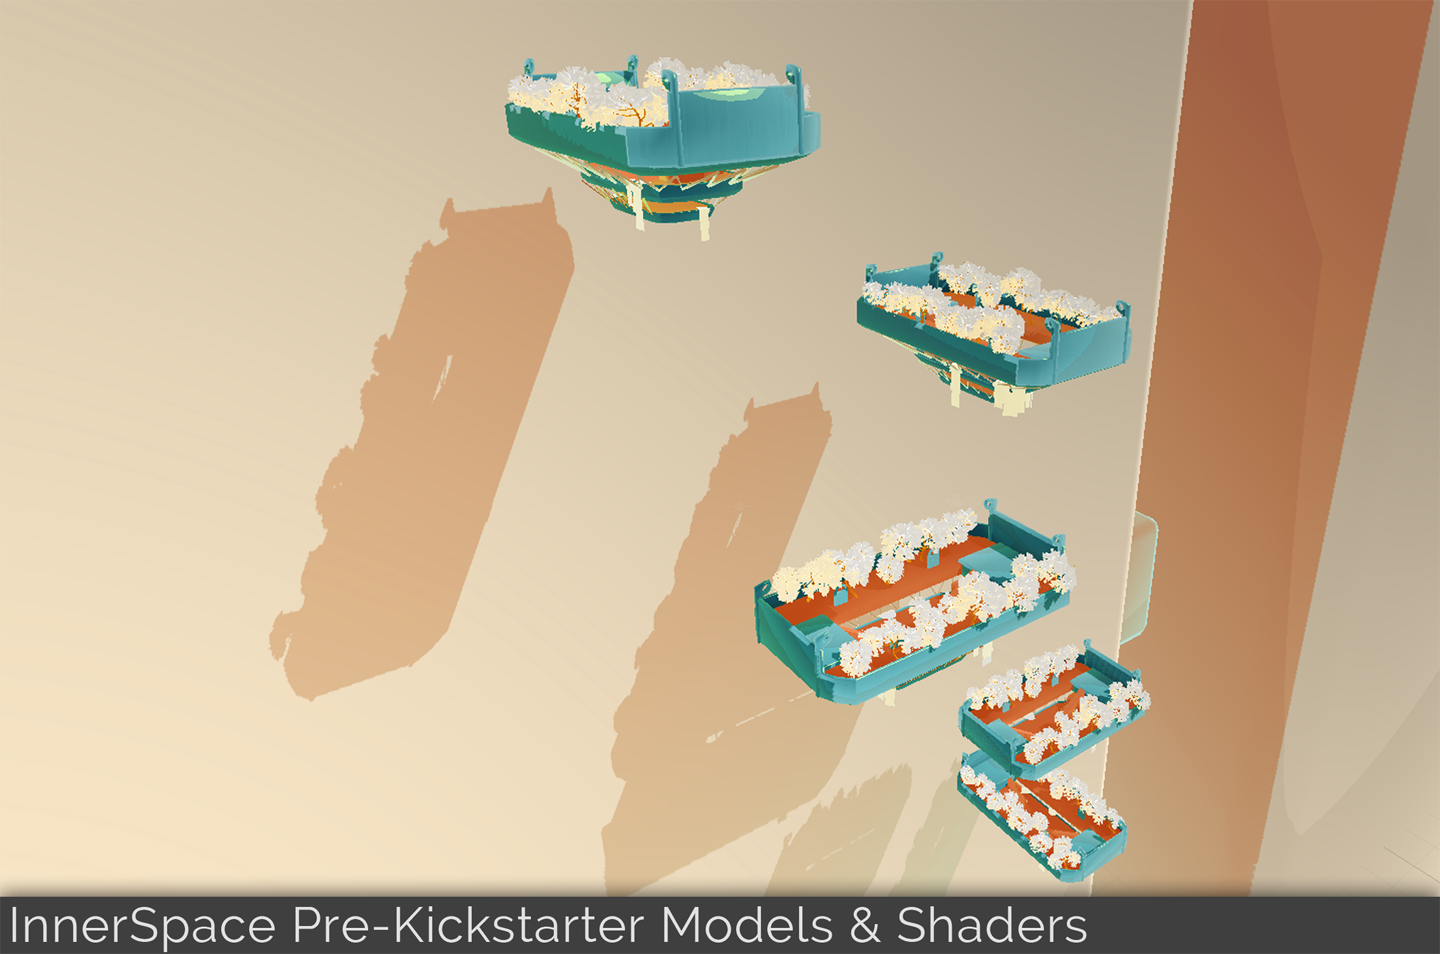 PolyKnightGames_InnerSpace_Shaders1